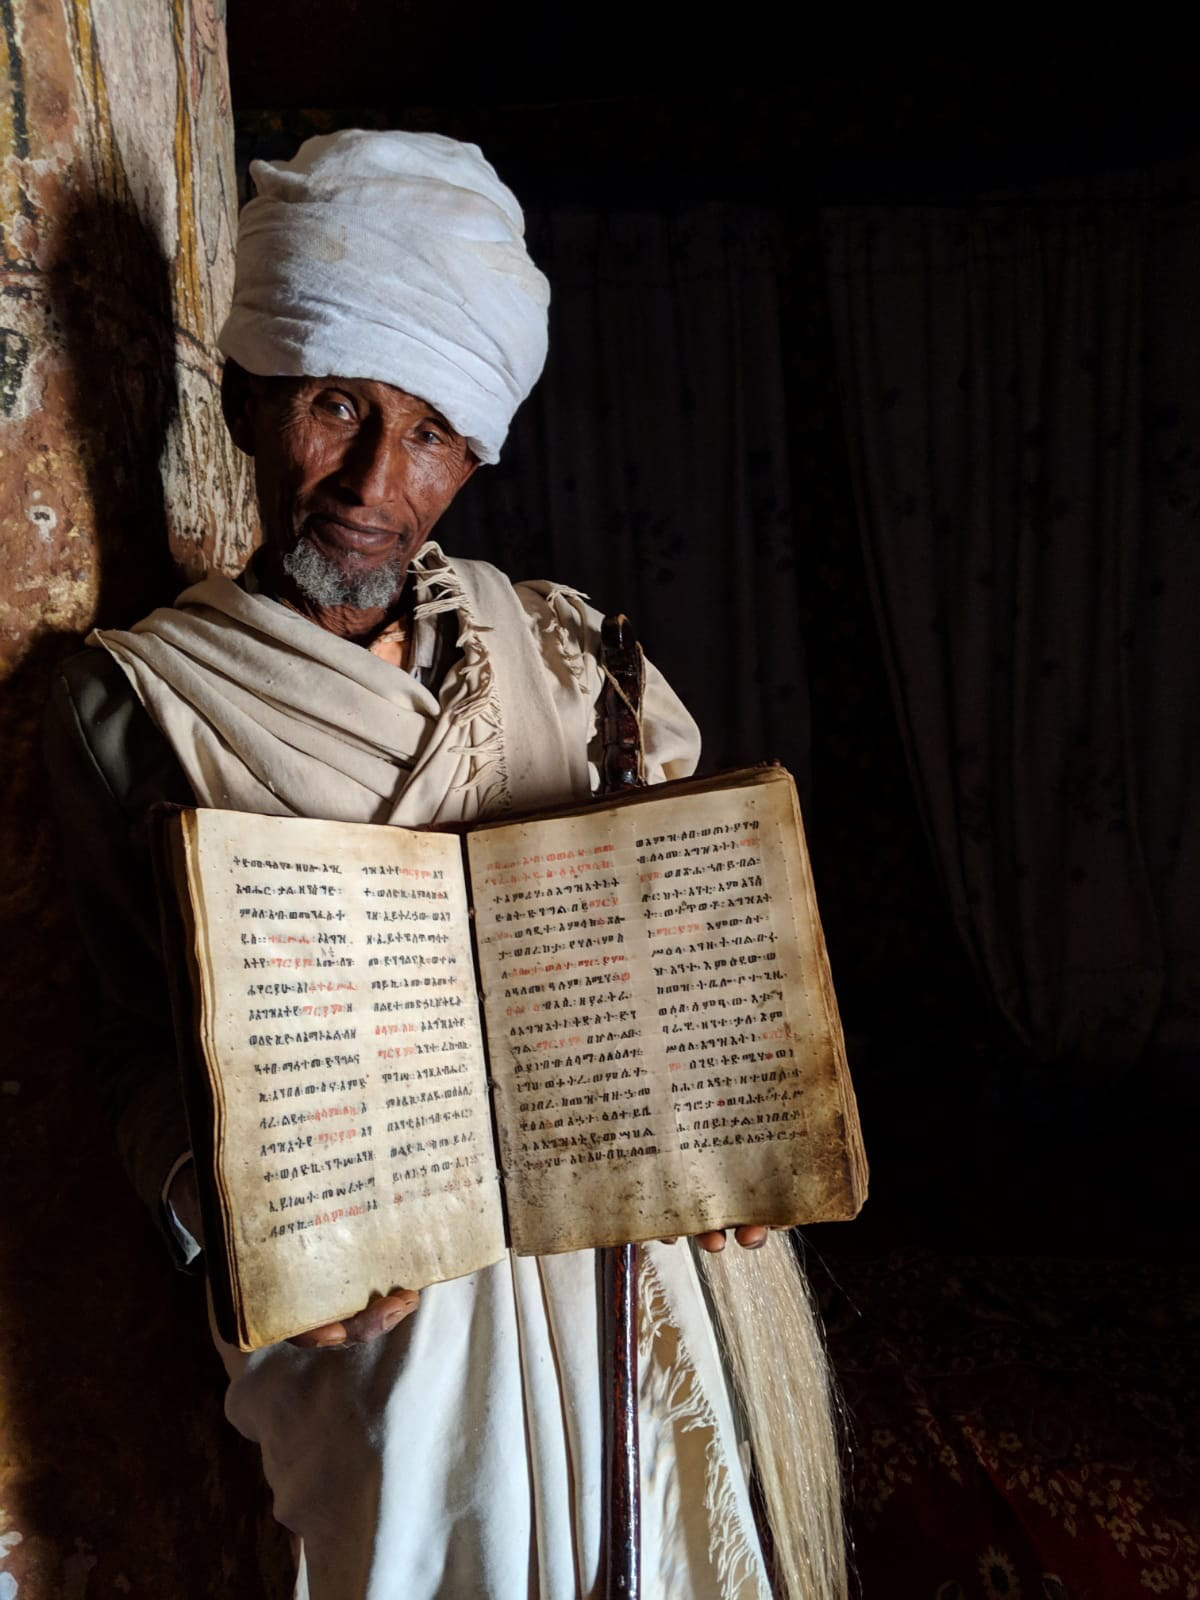 A priest holds the Bible in the Abuna Yemata Guh church, 2,580 metres above ground level. Its pages are made out of goat skin inked with Amharic letters, where the names of holy figures are written in red – Tigray Region, Ethiopia © Lukas Dennert